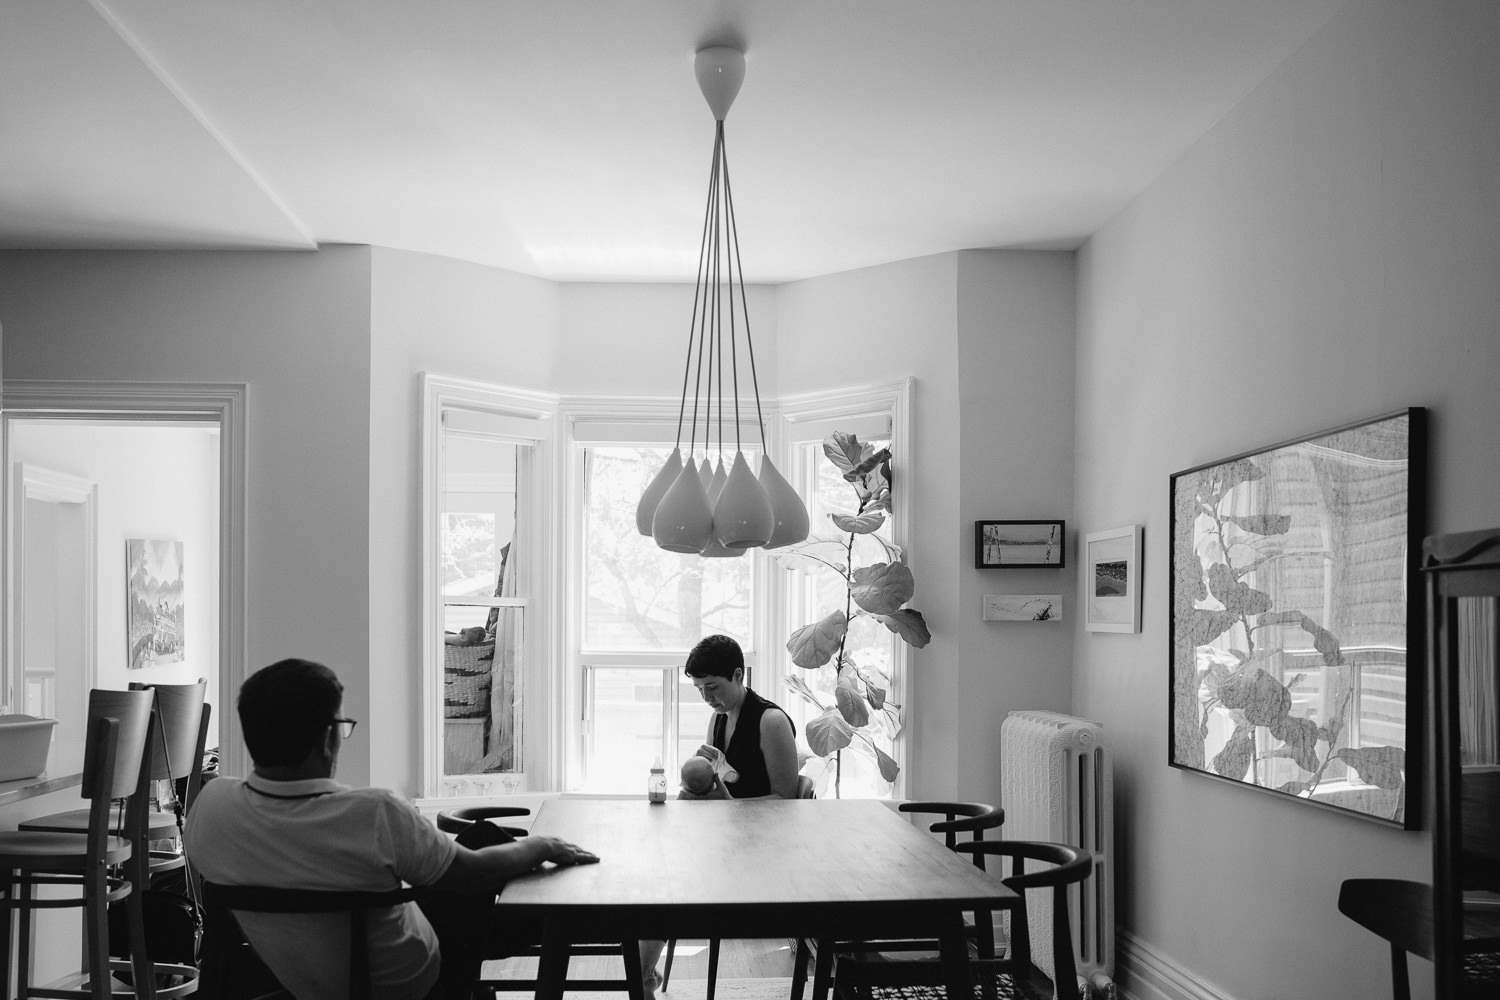 mom and dad sitting in dining room chairs, mother bottle feeding 2 week old baby boy - Barrie Lifestyle Photography